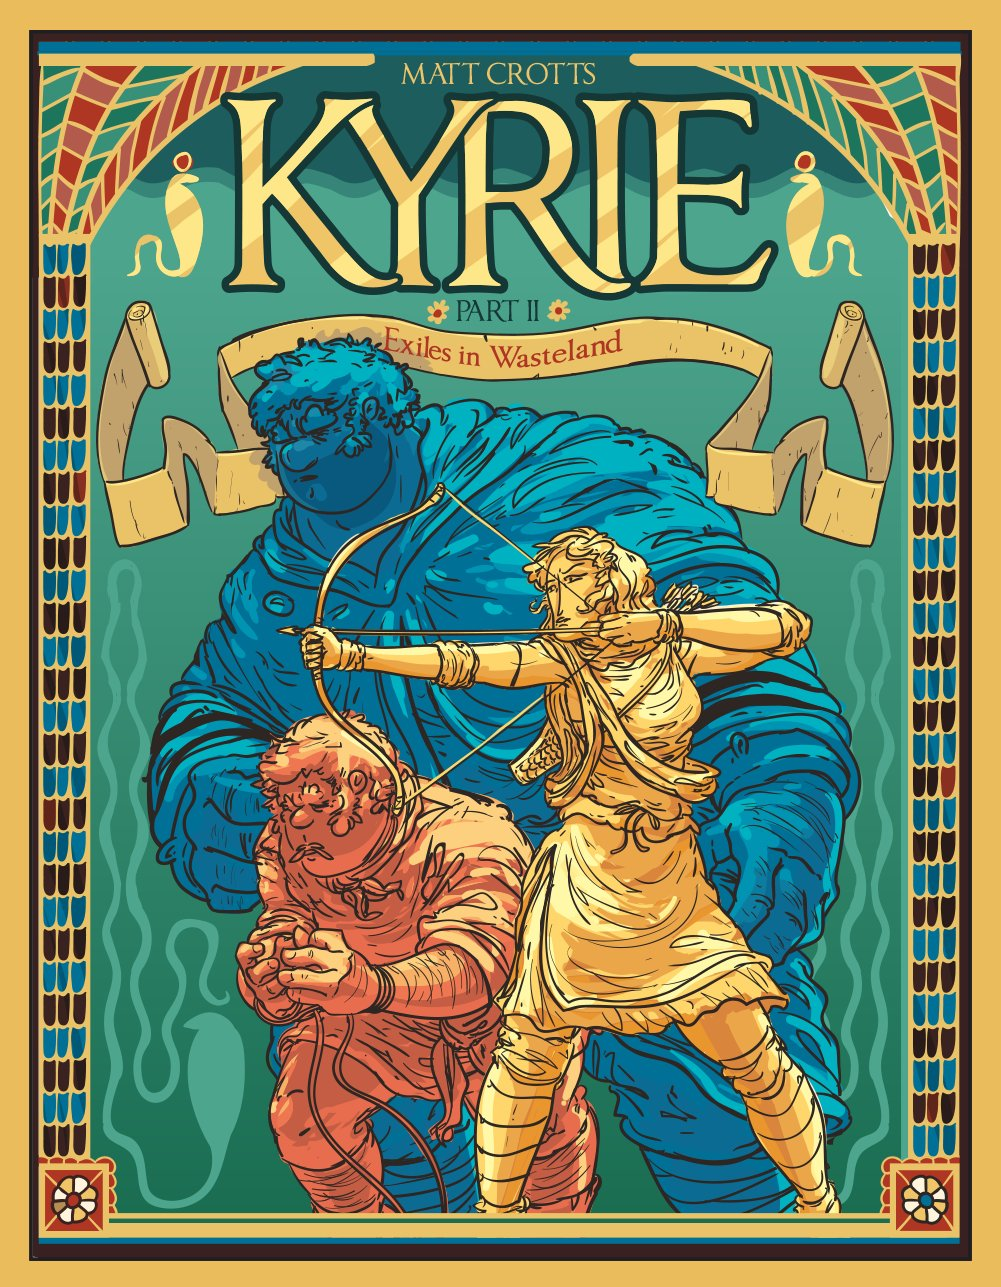 KYRIE: Exiles in Wasteland!